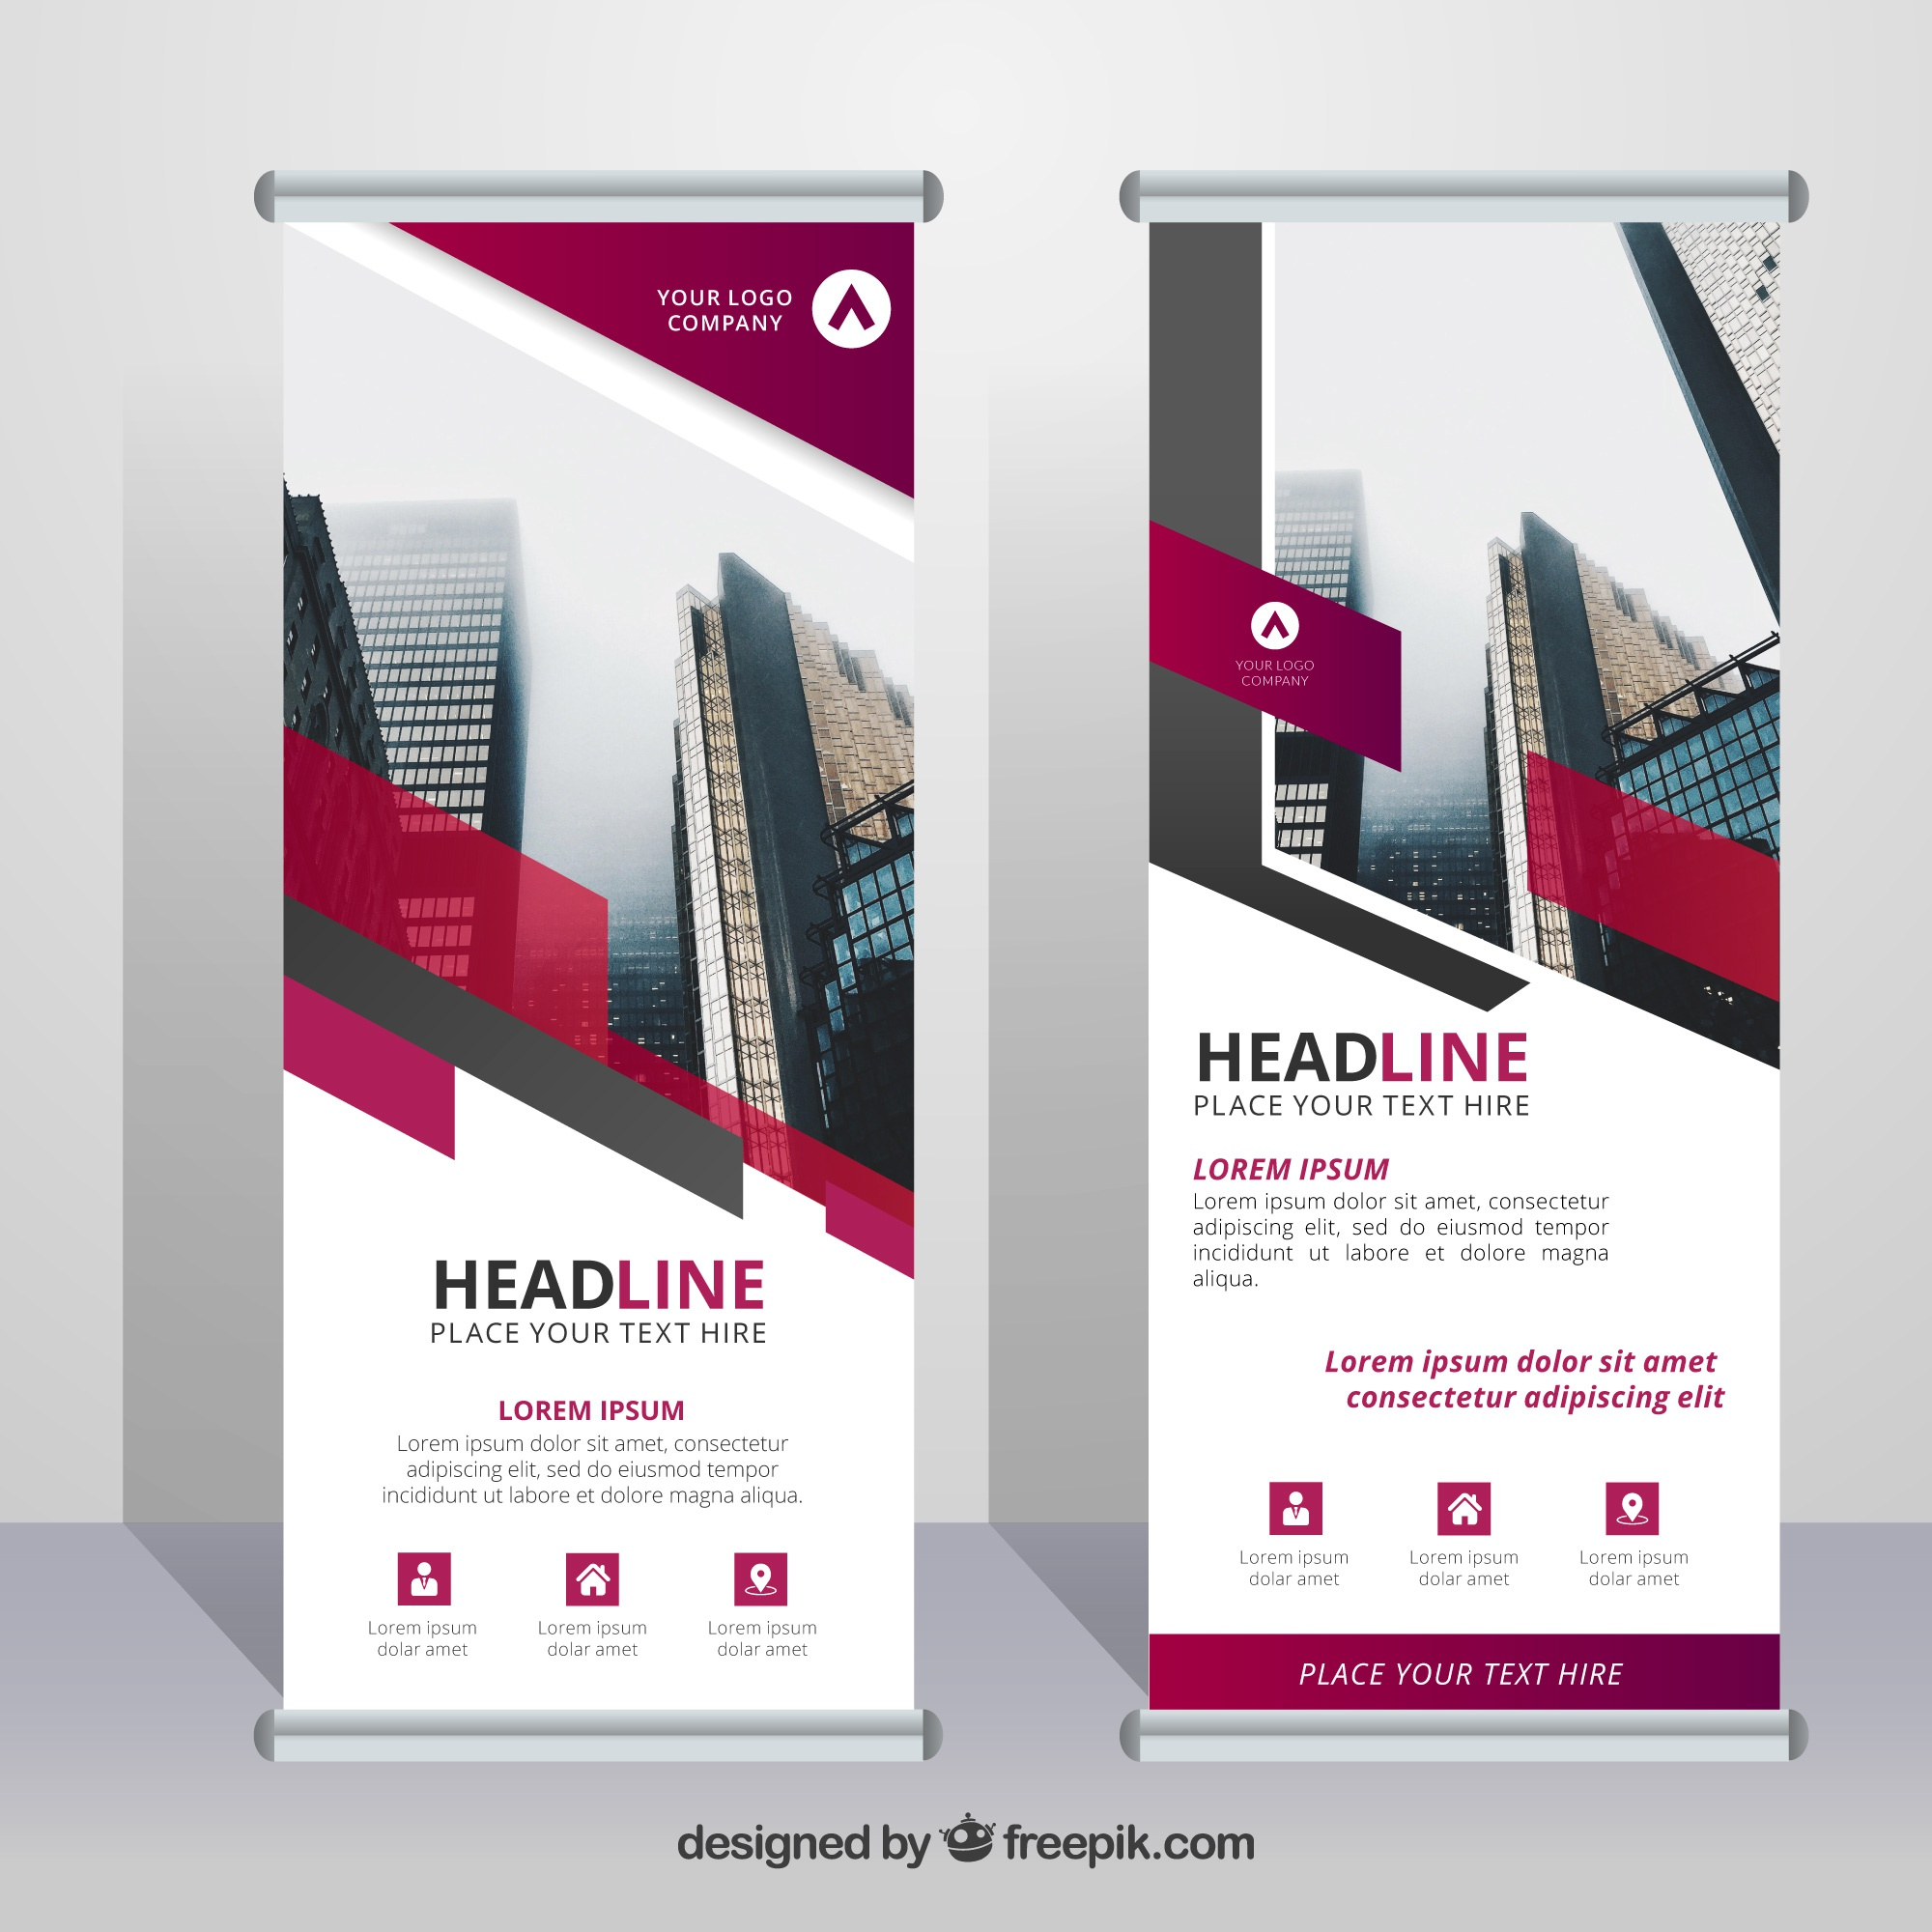 Business roll up template with color elements